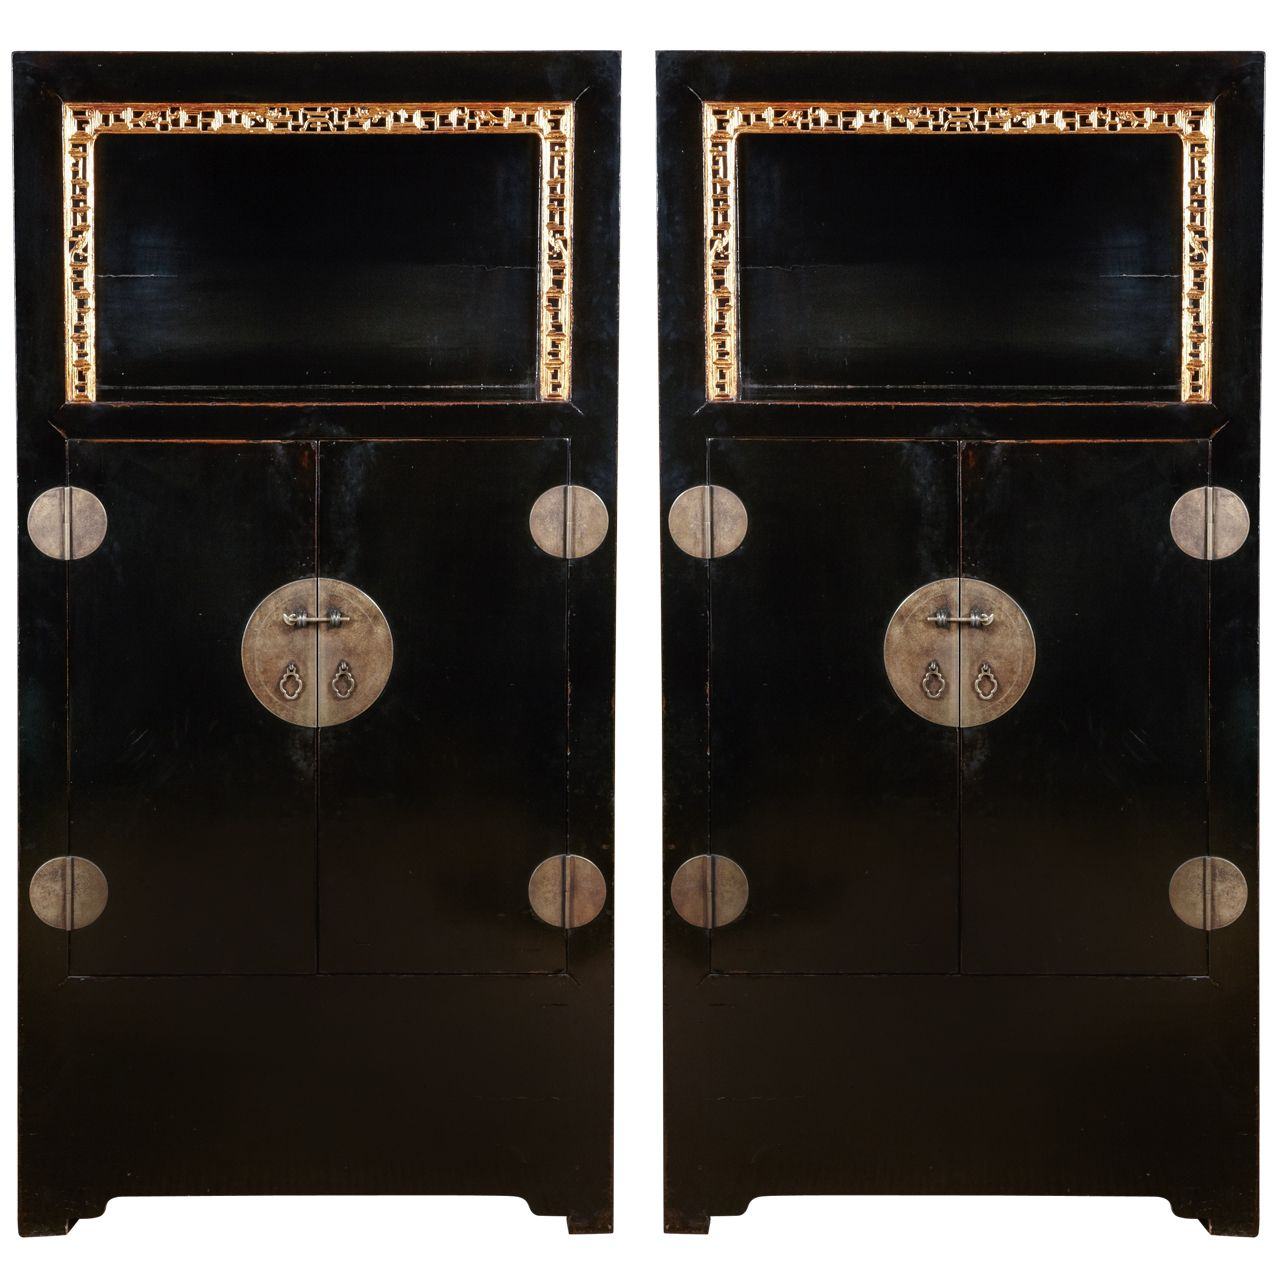 19th C A Pair Of Chinese Black Lacquer Cabinets From A Unique Collection Of Antique And Modern More Asian Art Objects And Furniture At Http Www Forteresse